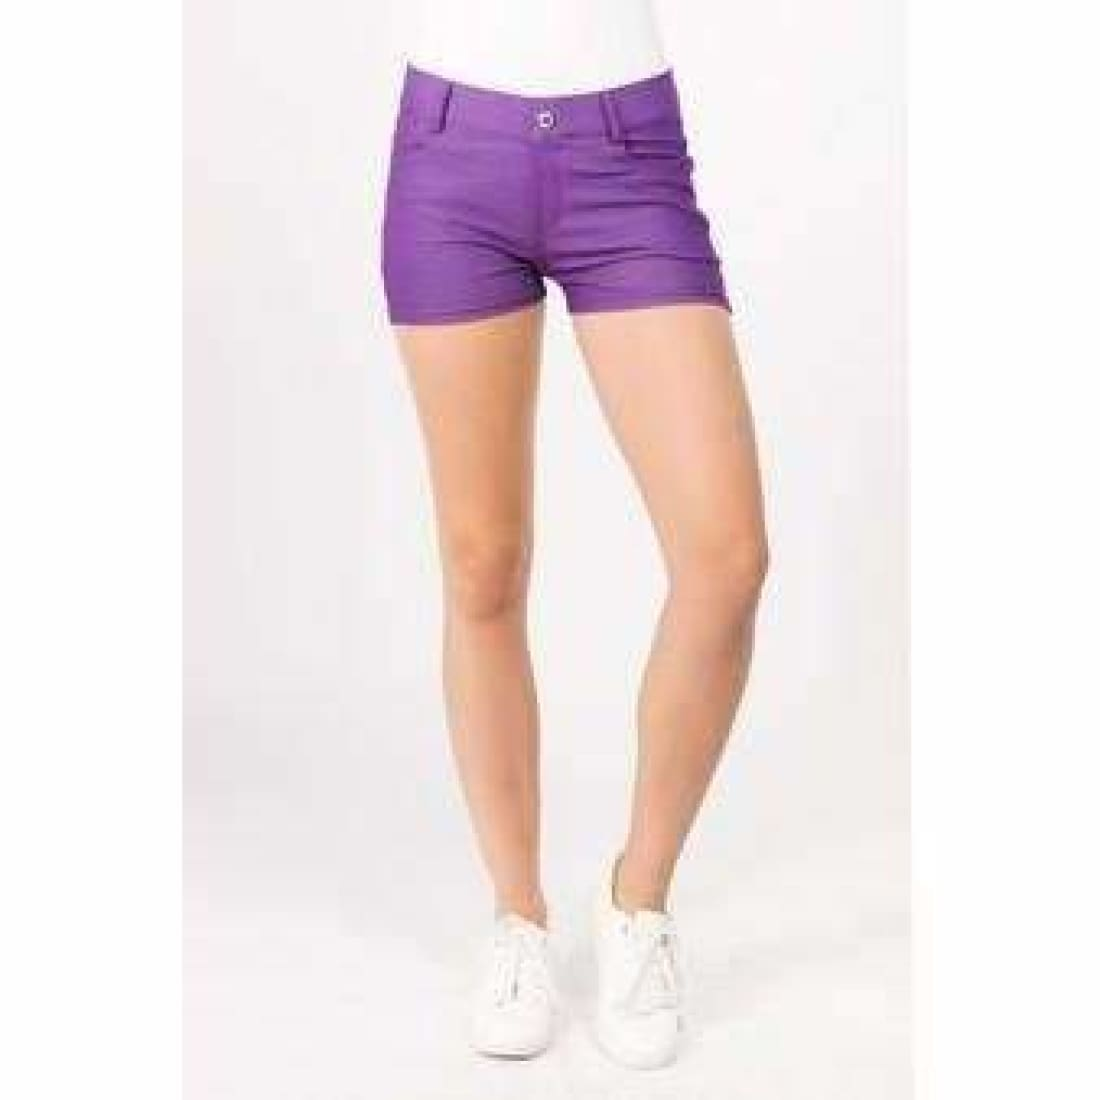 Yelete Womens Classic Jean Like Jegging Shorts S / Purple Shorts